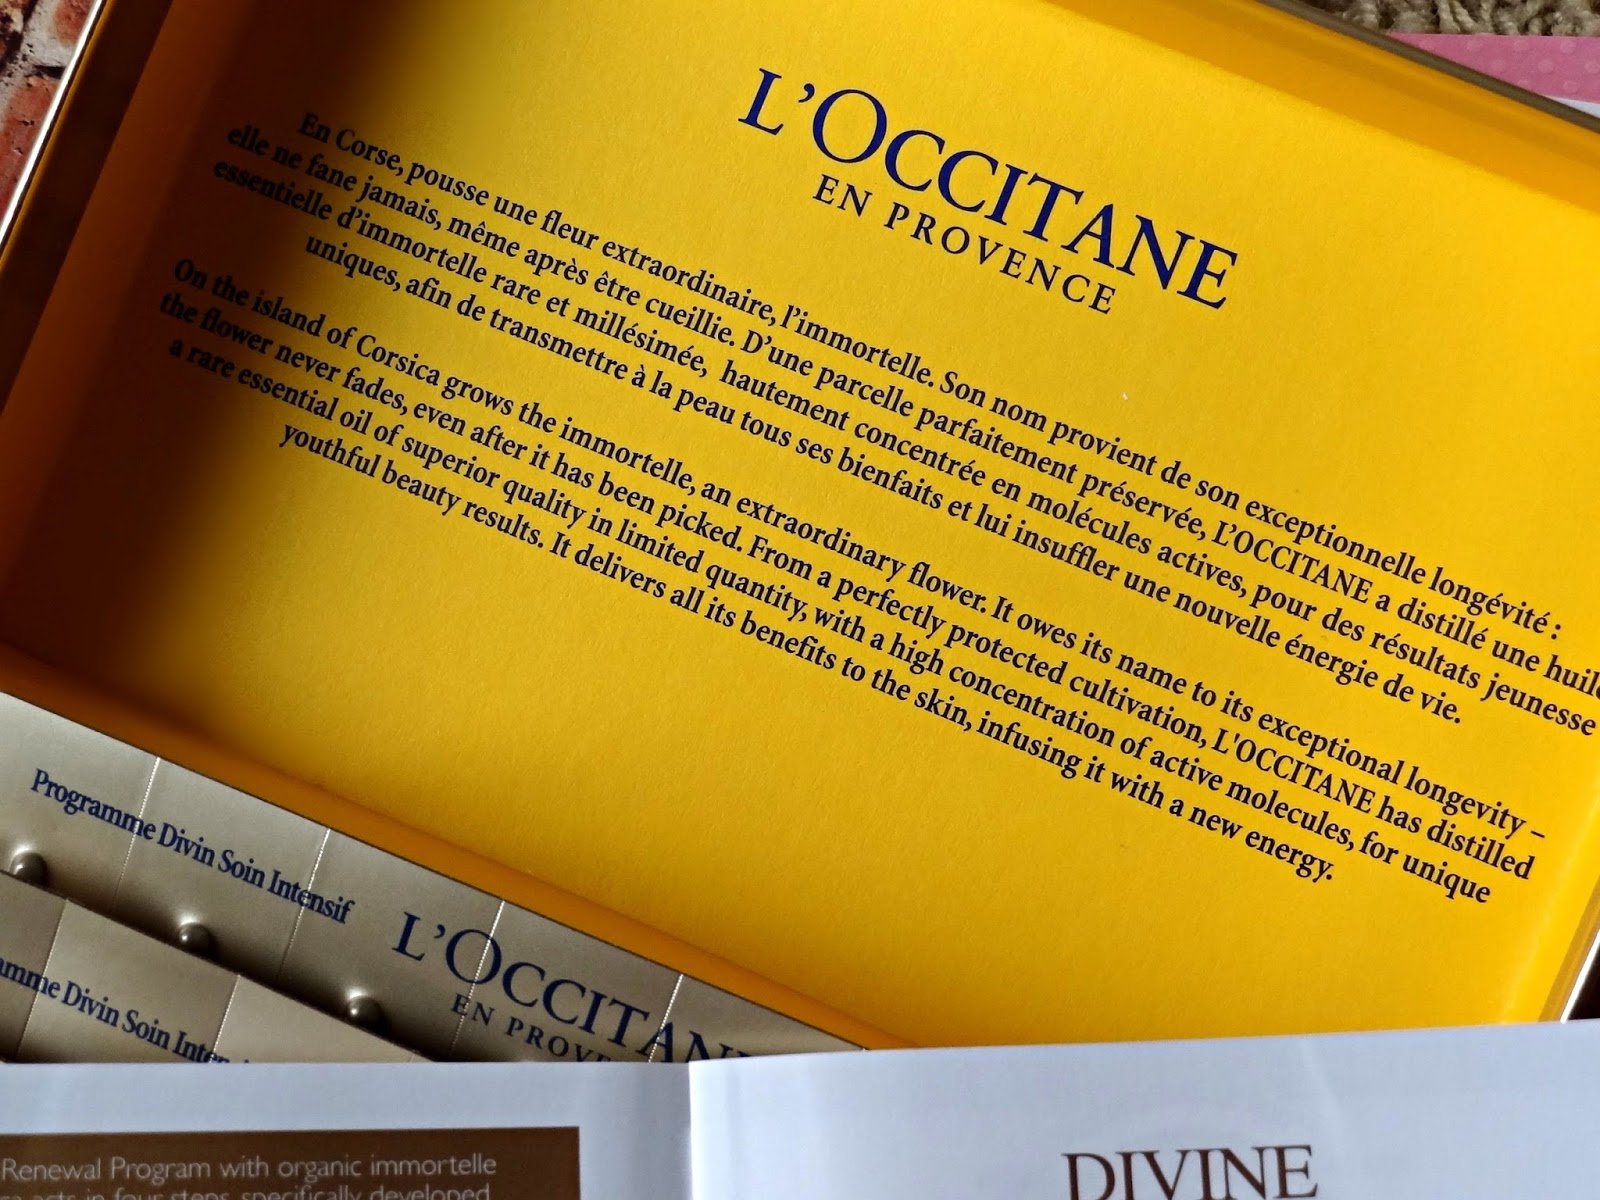 L'Occitane Immortelle 28 Day Divine Renewal Program Review, Photos